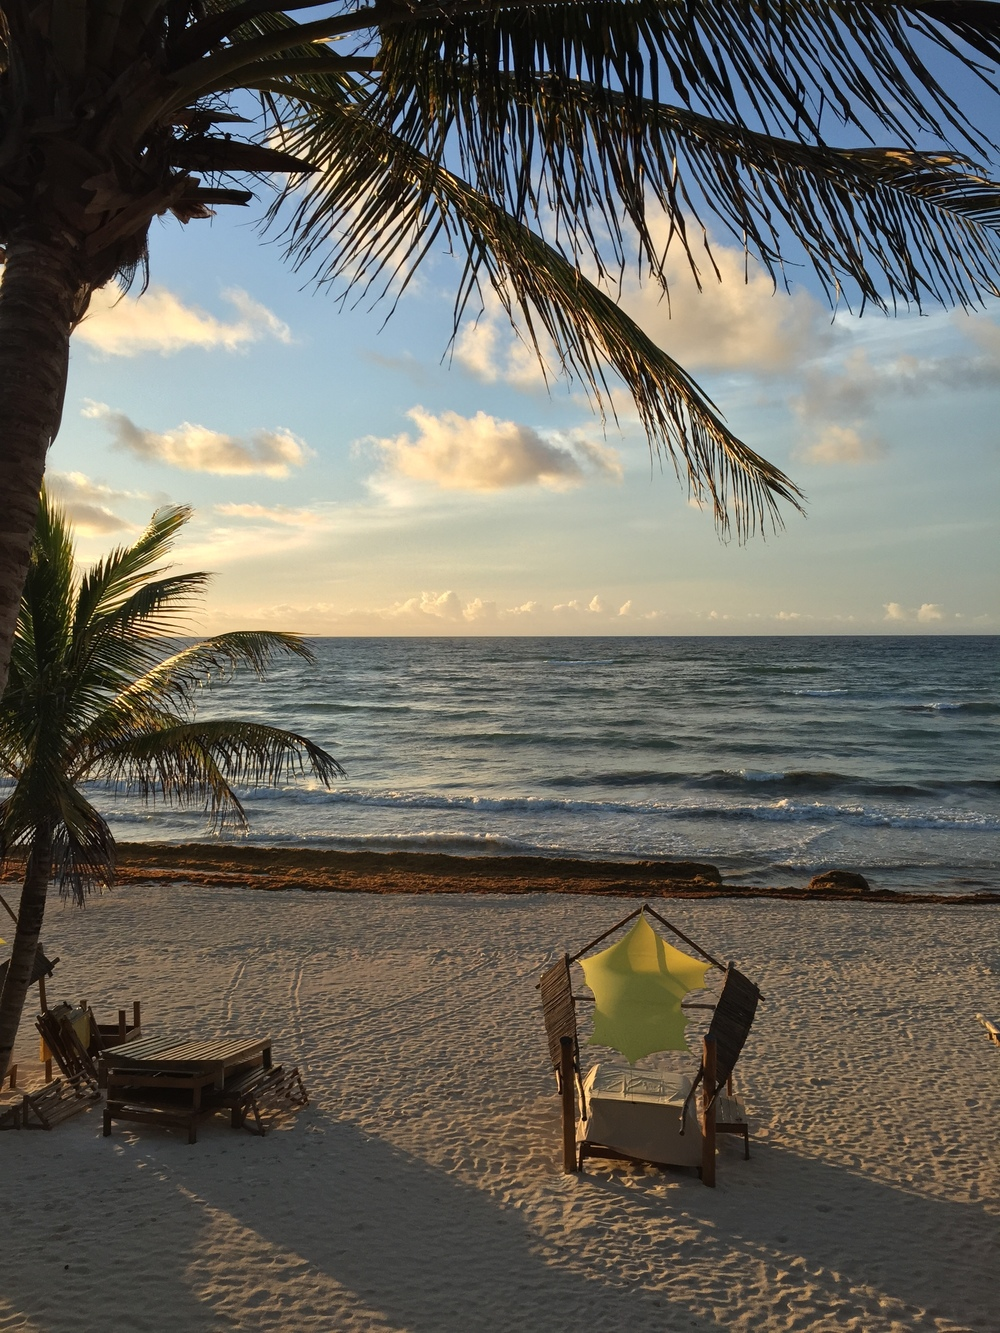 The view from our cabana in Tulum.